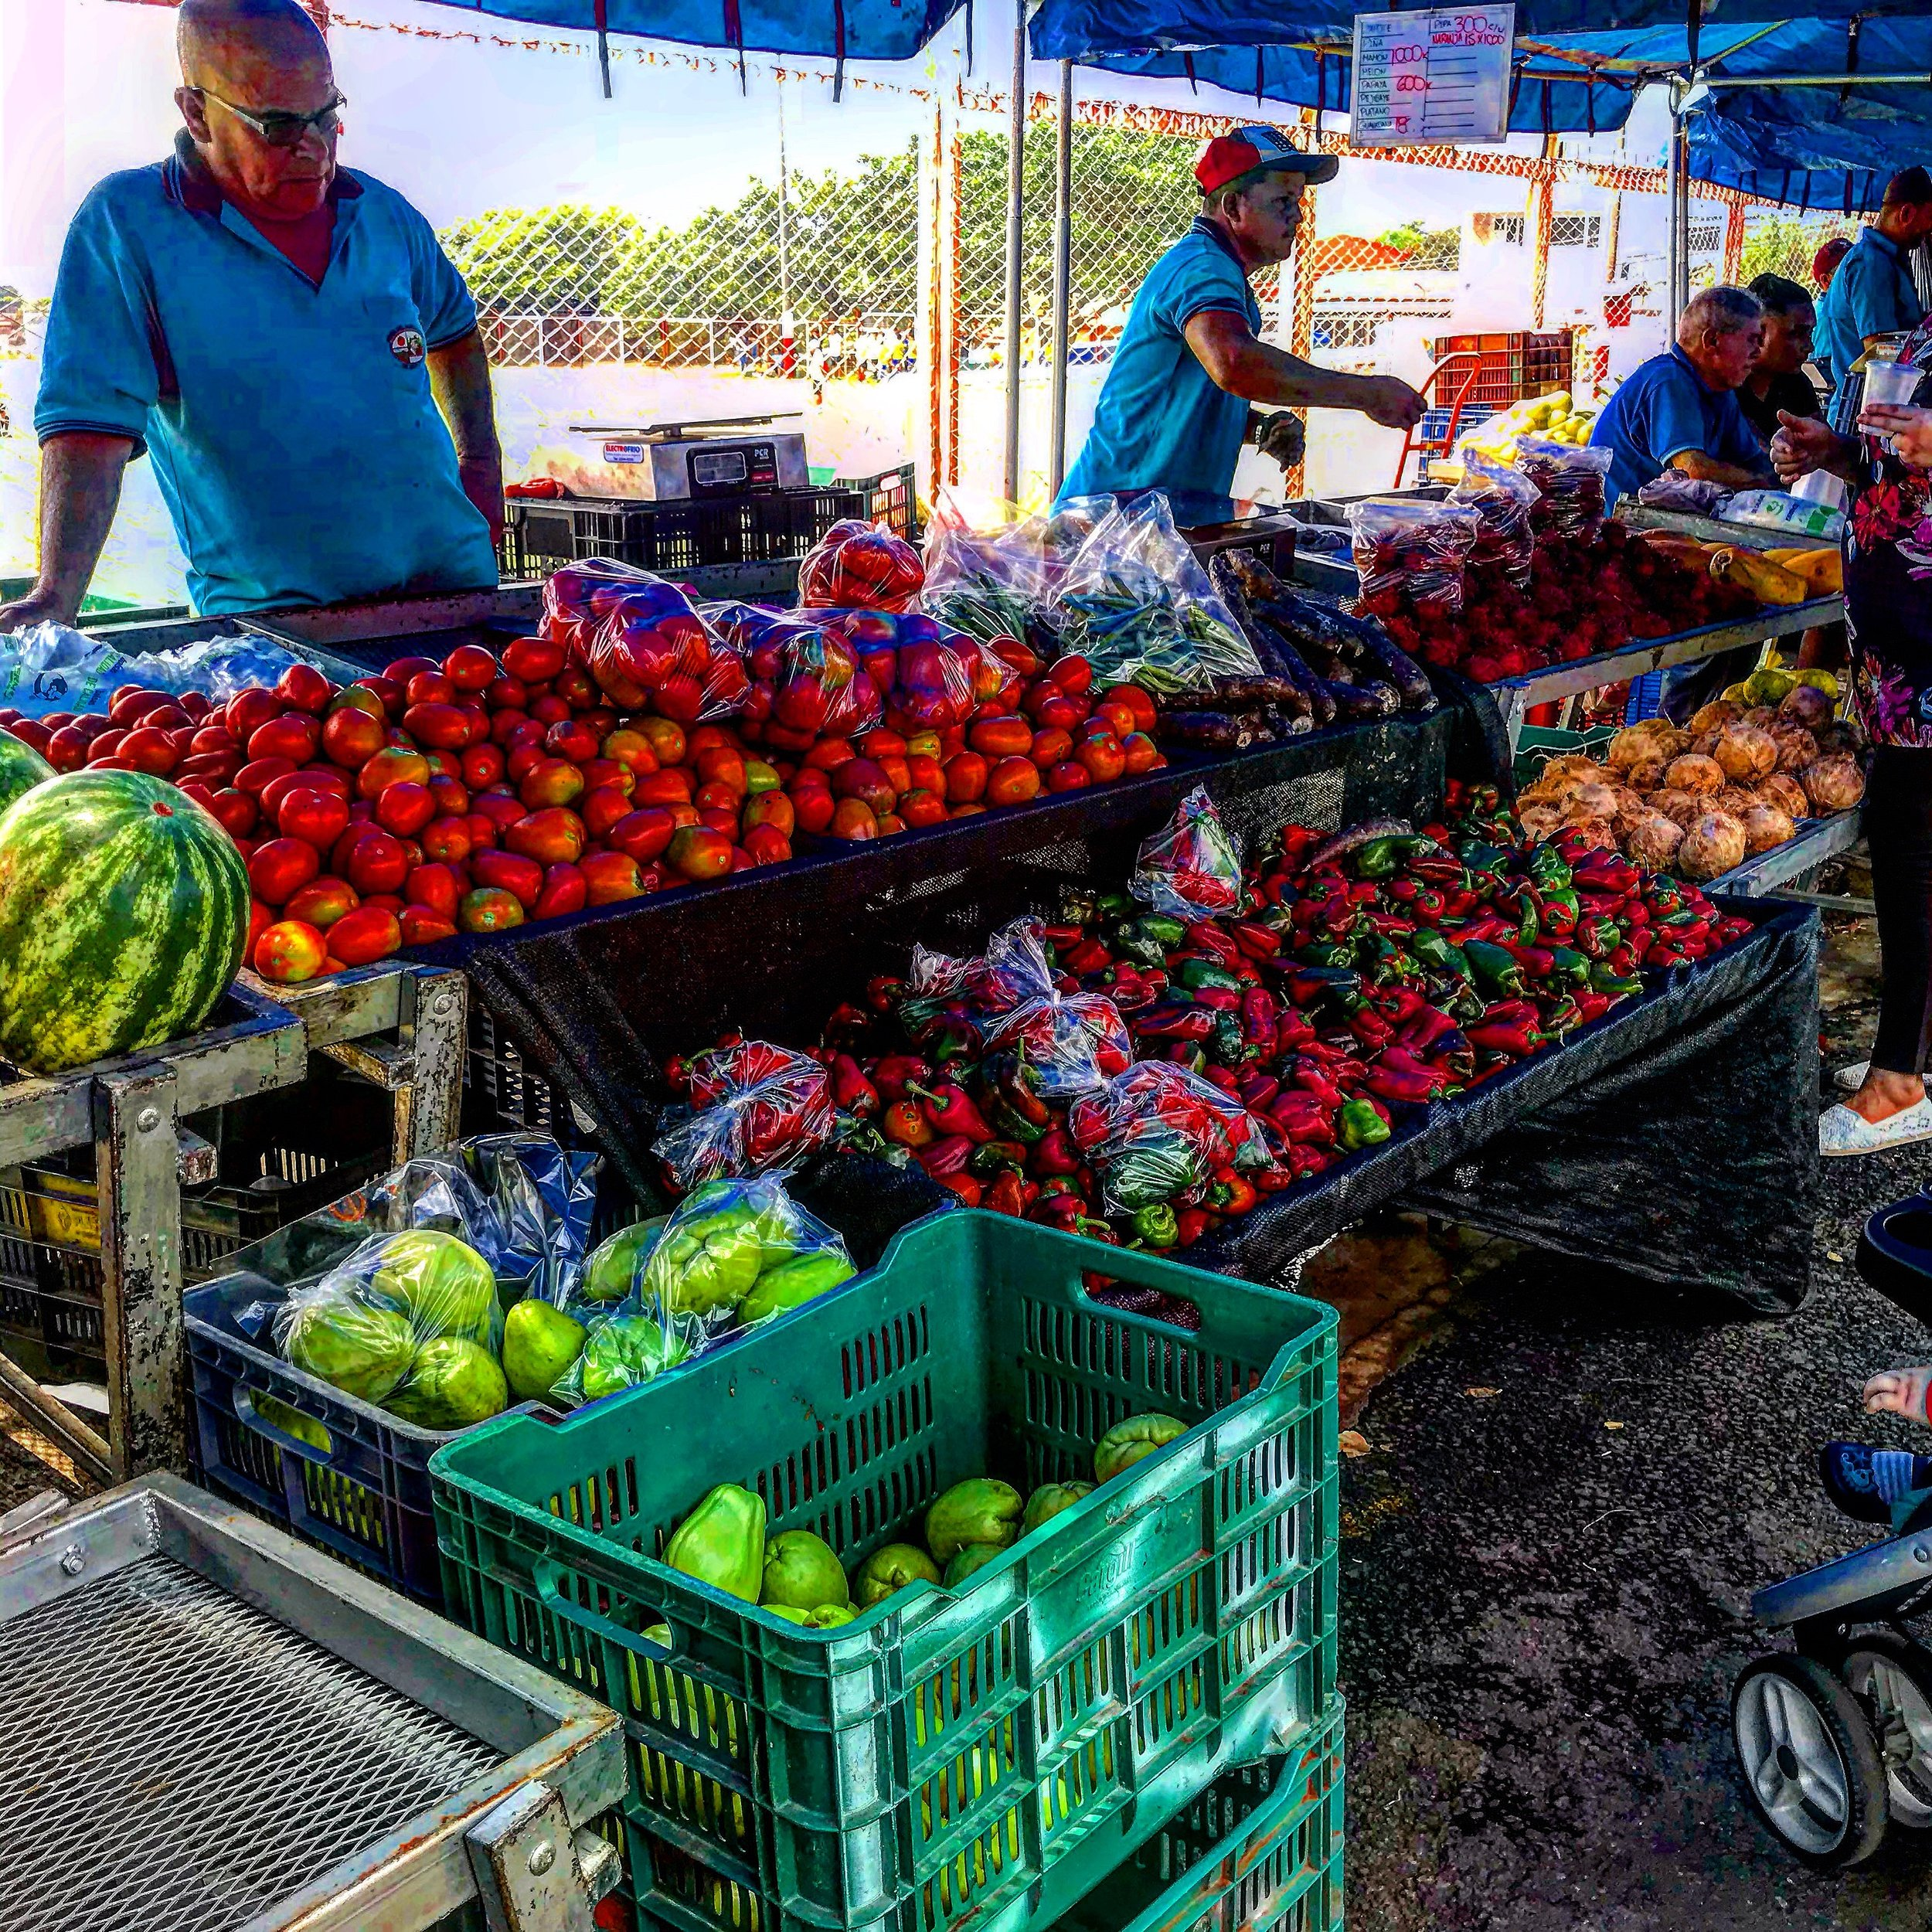 Vendor at the Farmers Market in Barva de Heredia